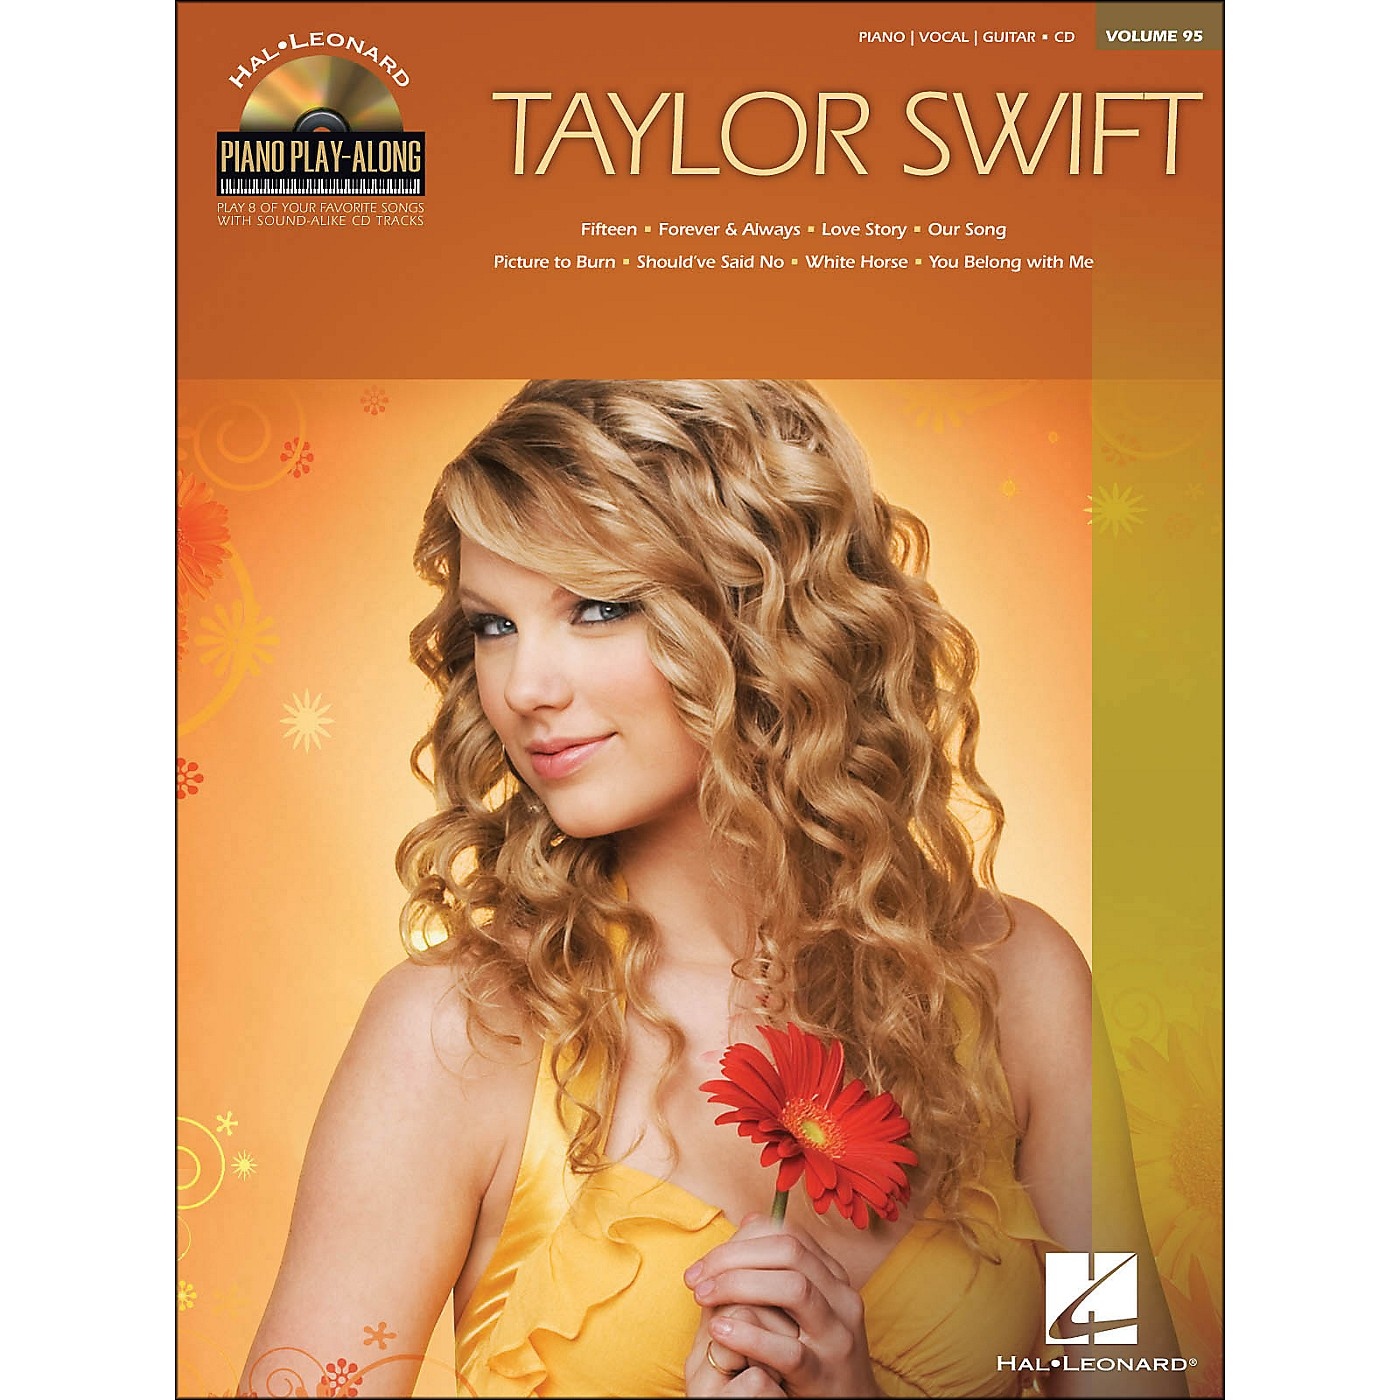 Hal Leonard Taylor Swift - Piano Play-Along Volume 95 (CD/Pkg) arranged for piano, vocal, and guitar (P/V/G) thumbnail